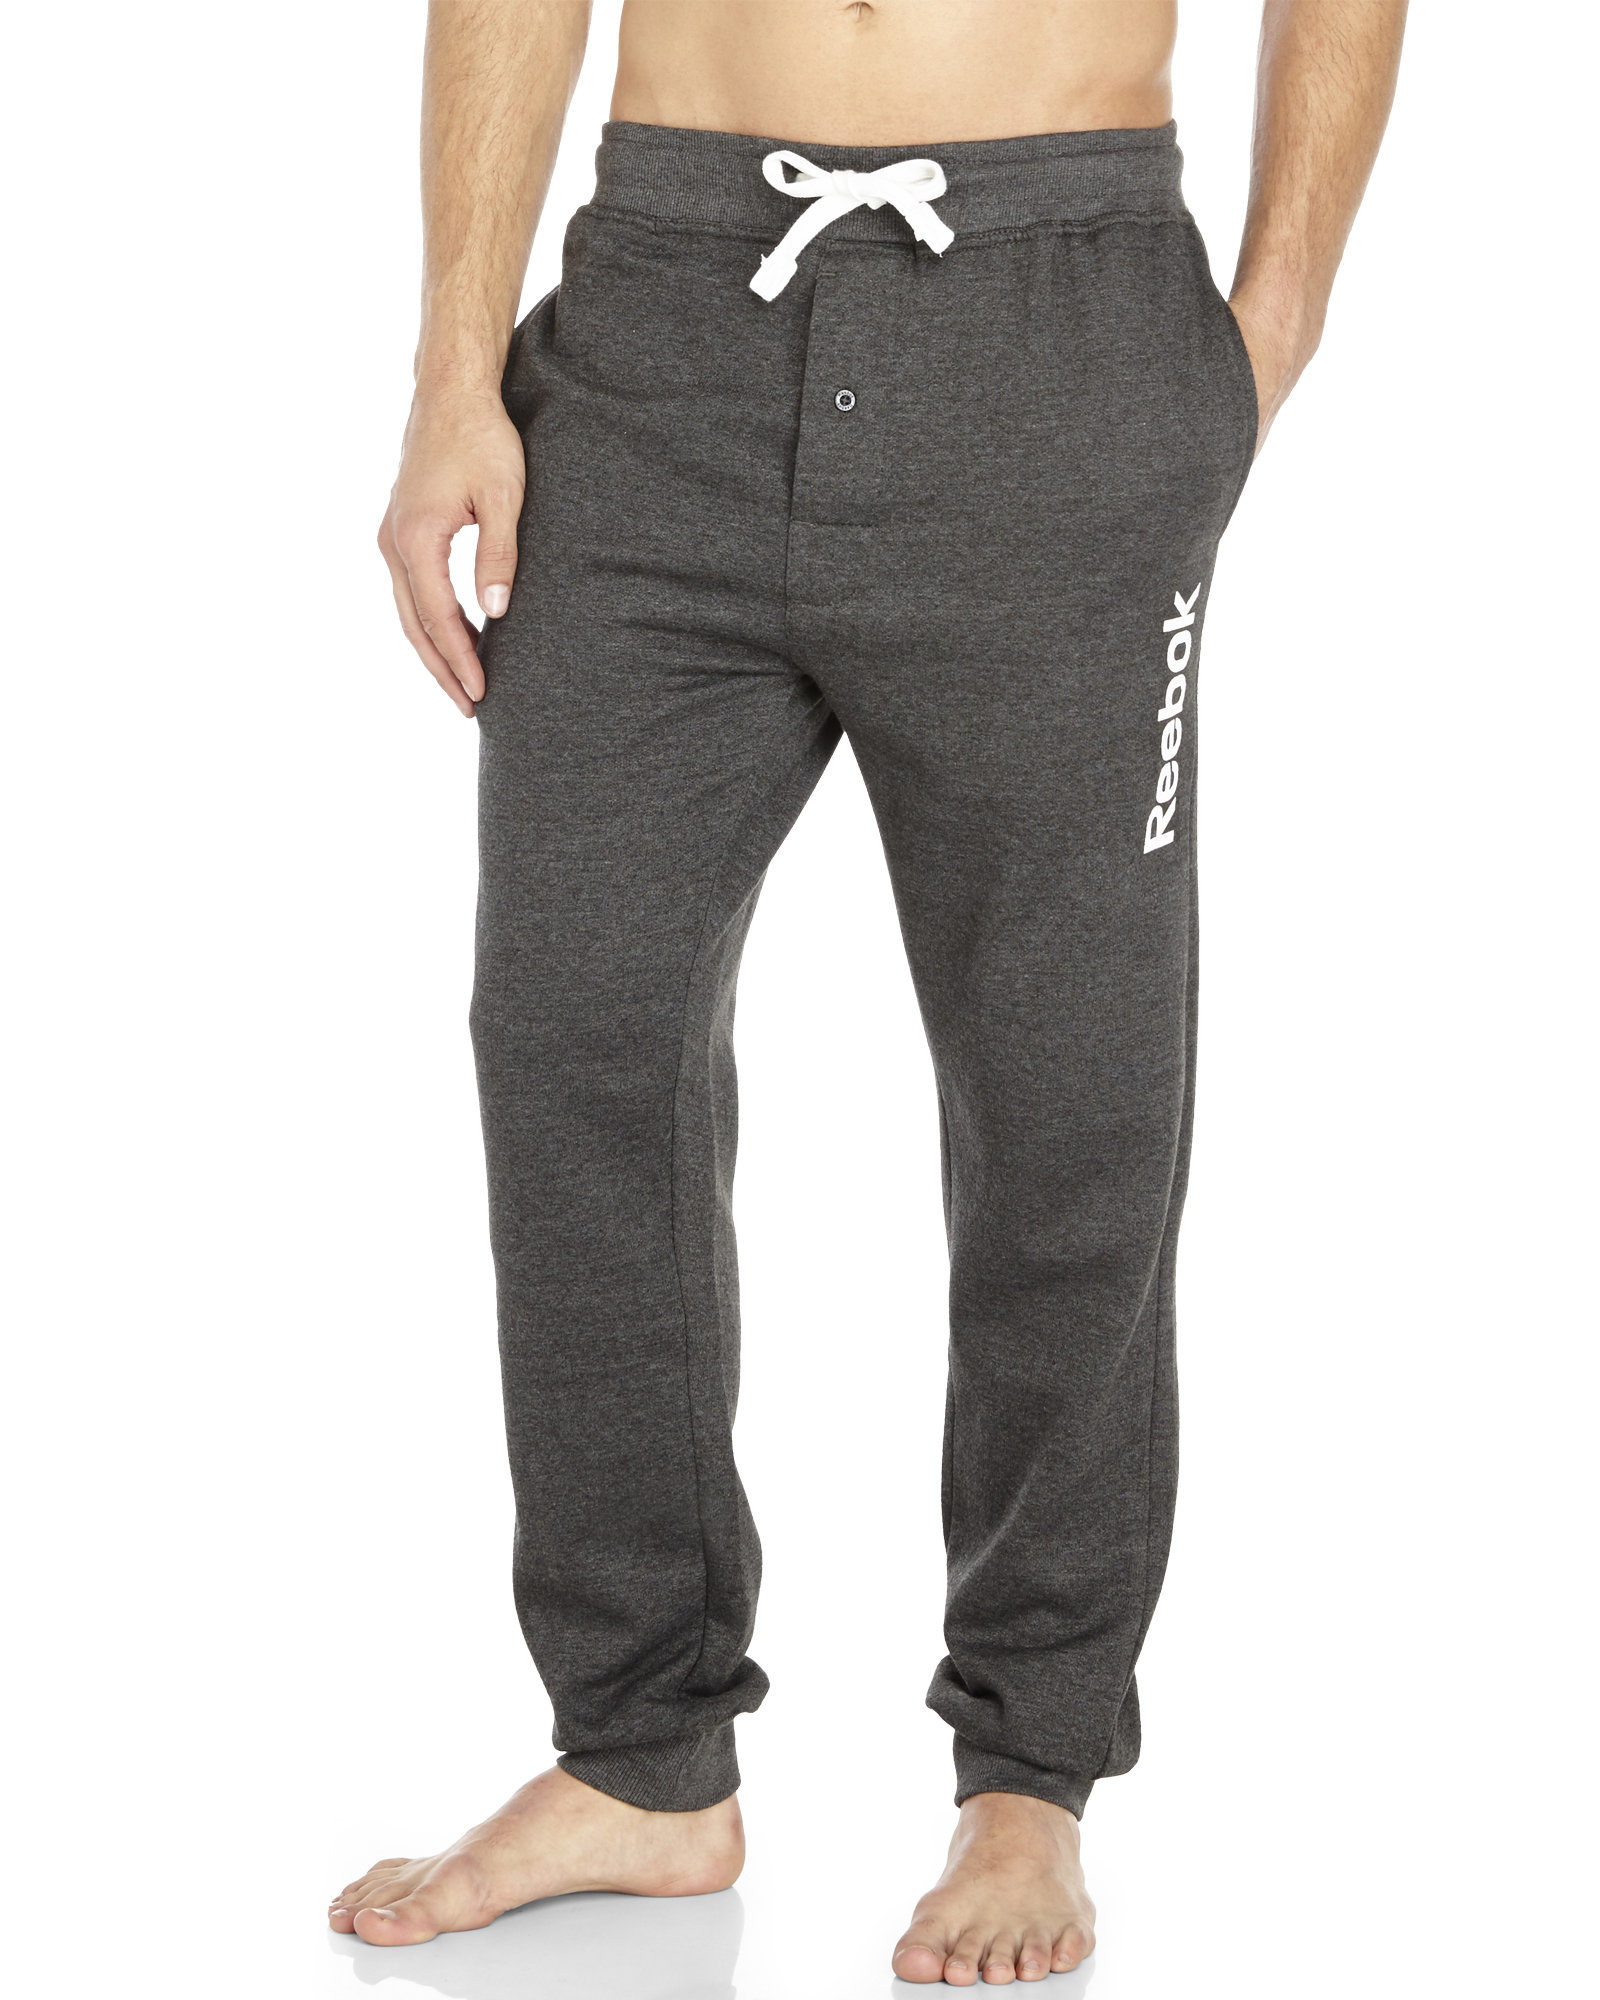 Lyst Reebok Knit Drawstring Lounge Pants In Gray For Men